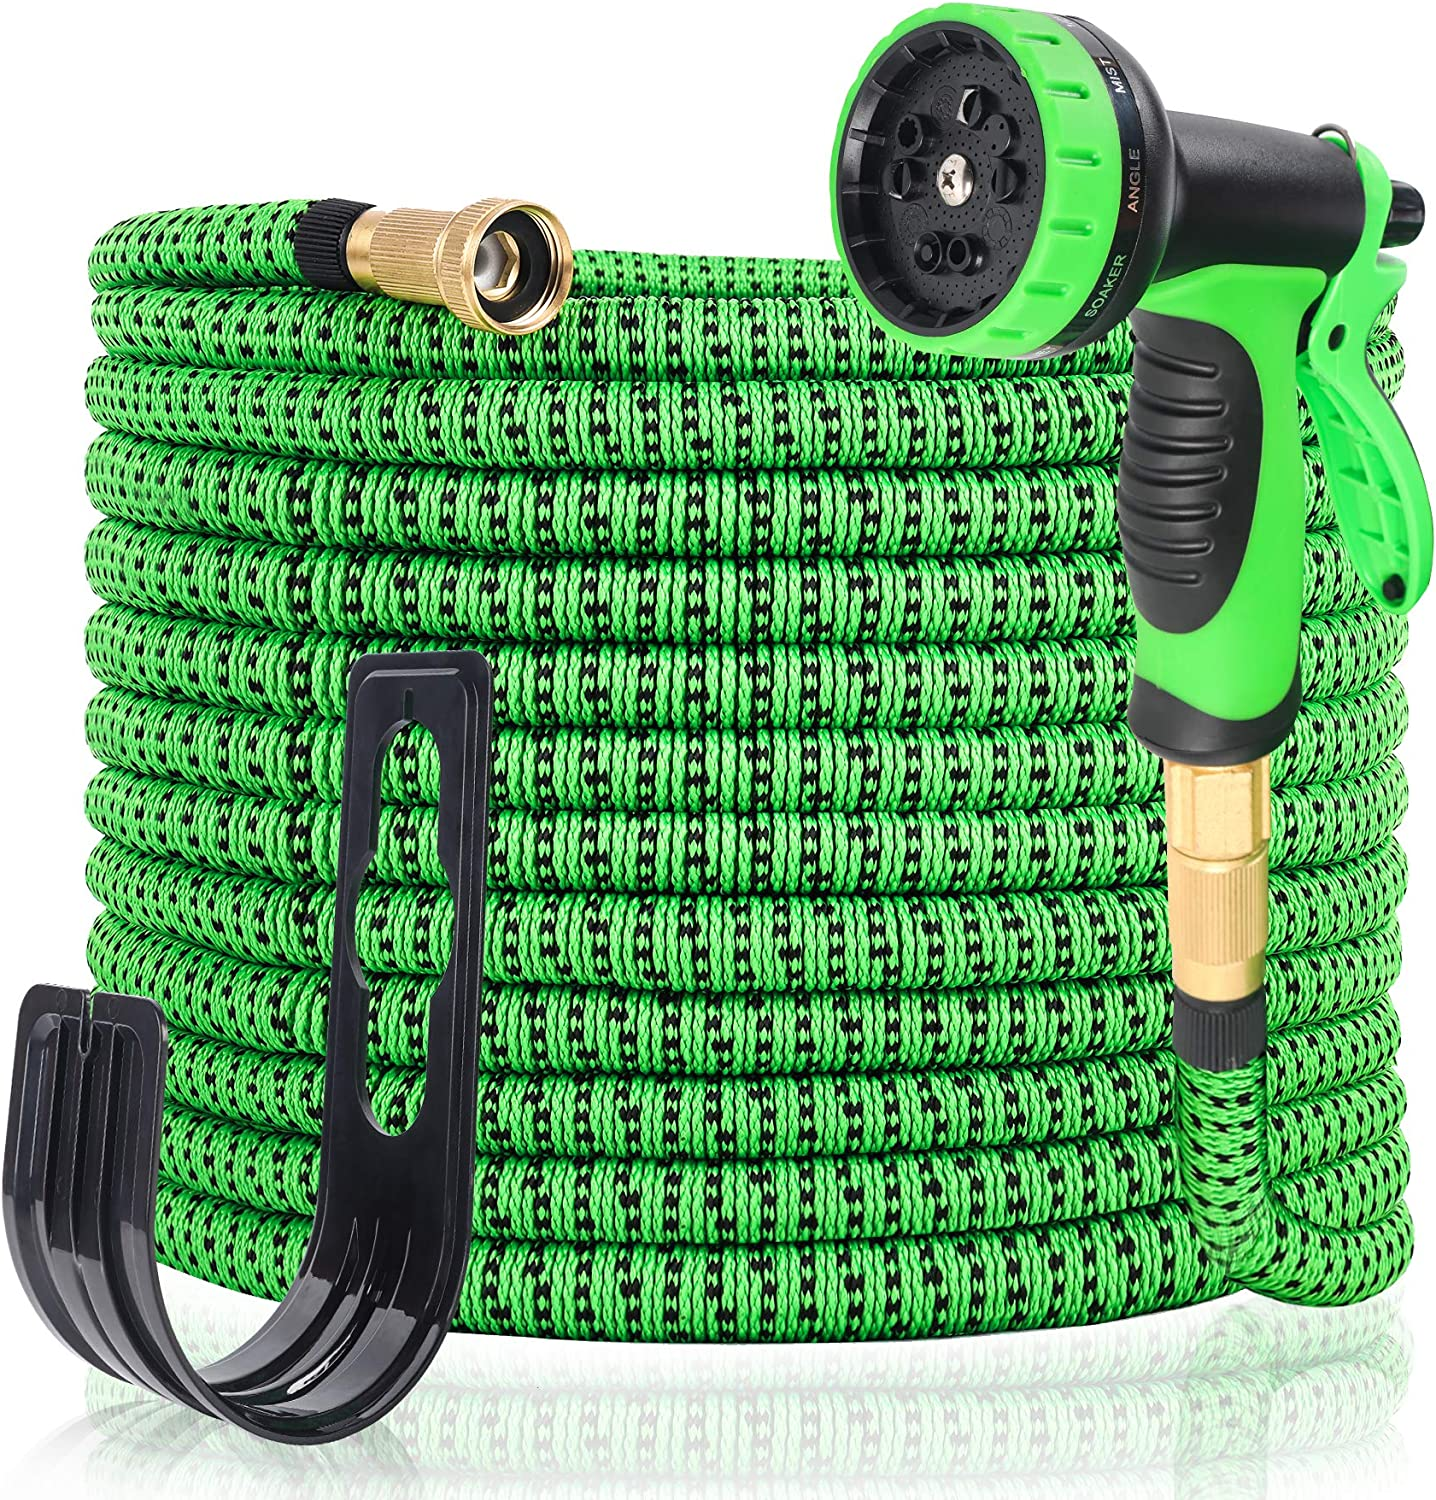 """Decoroca 100FT Expandable Garden Hose - Gardening Flexible Hose with Free 10 Function Spray Nozzle, Triple Latex Core Lightweight Water Hose, 3/4"""" Solid Brass Connectors, Retractable Outdoor Yard Hose"""